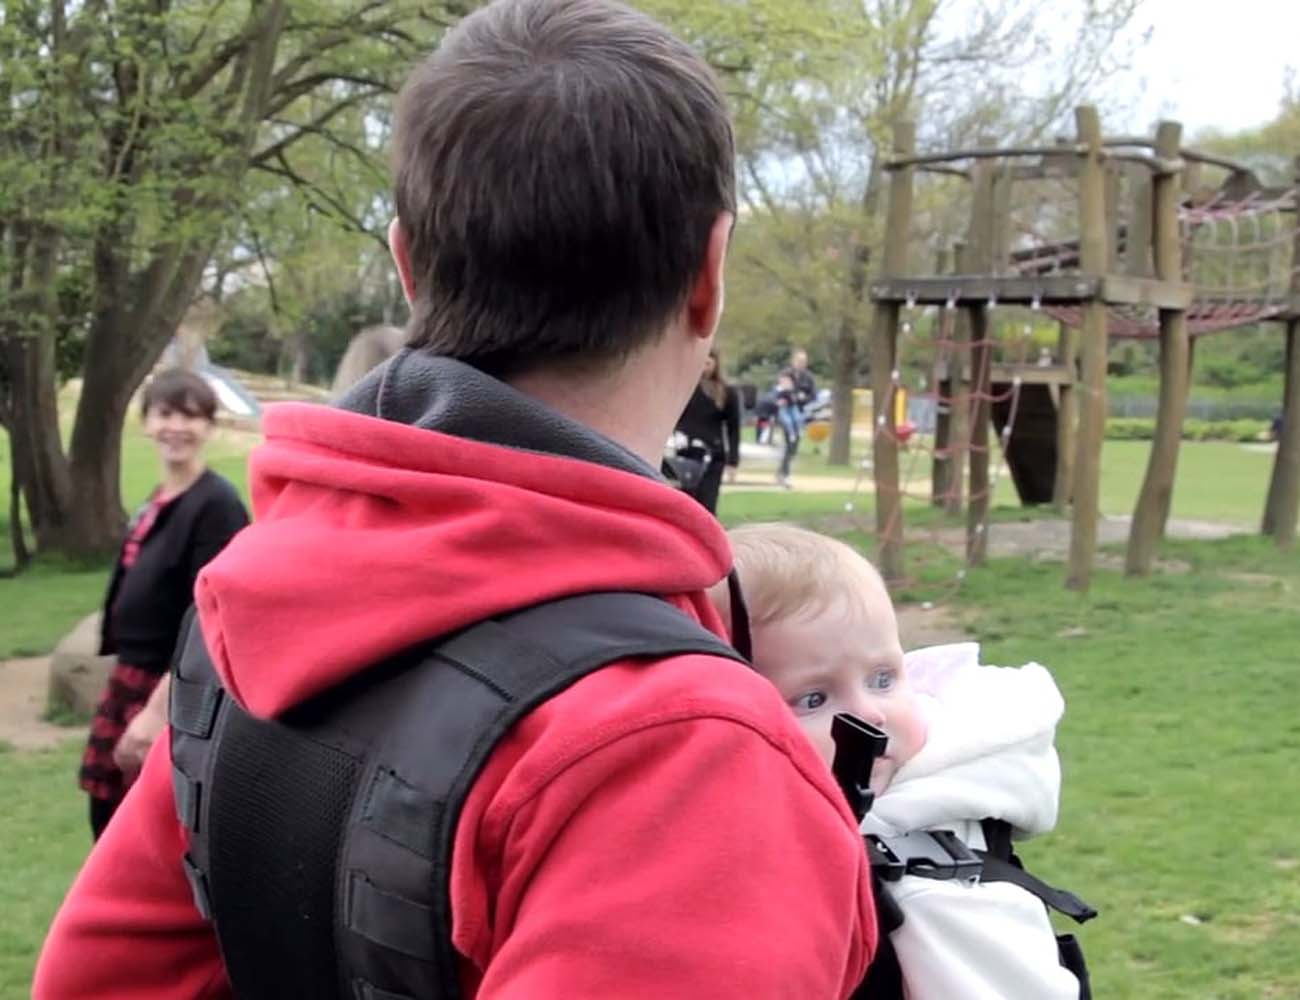 Junior Adaptive Carrier System – Active Babycarrying